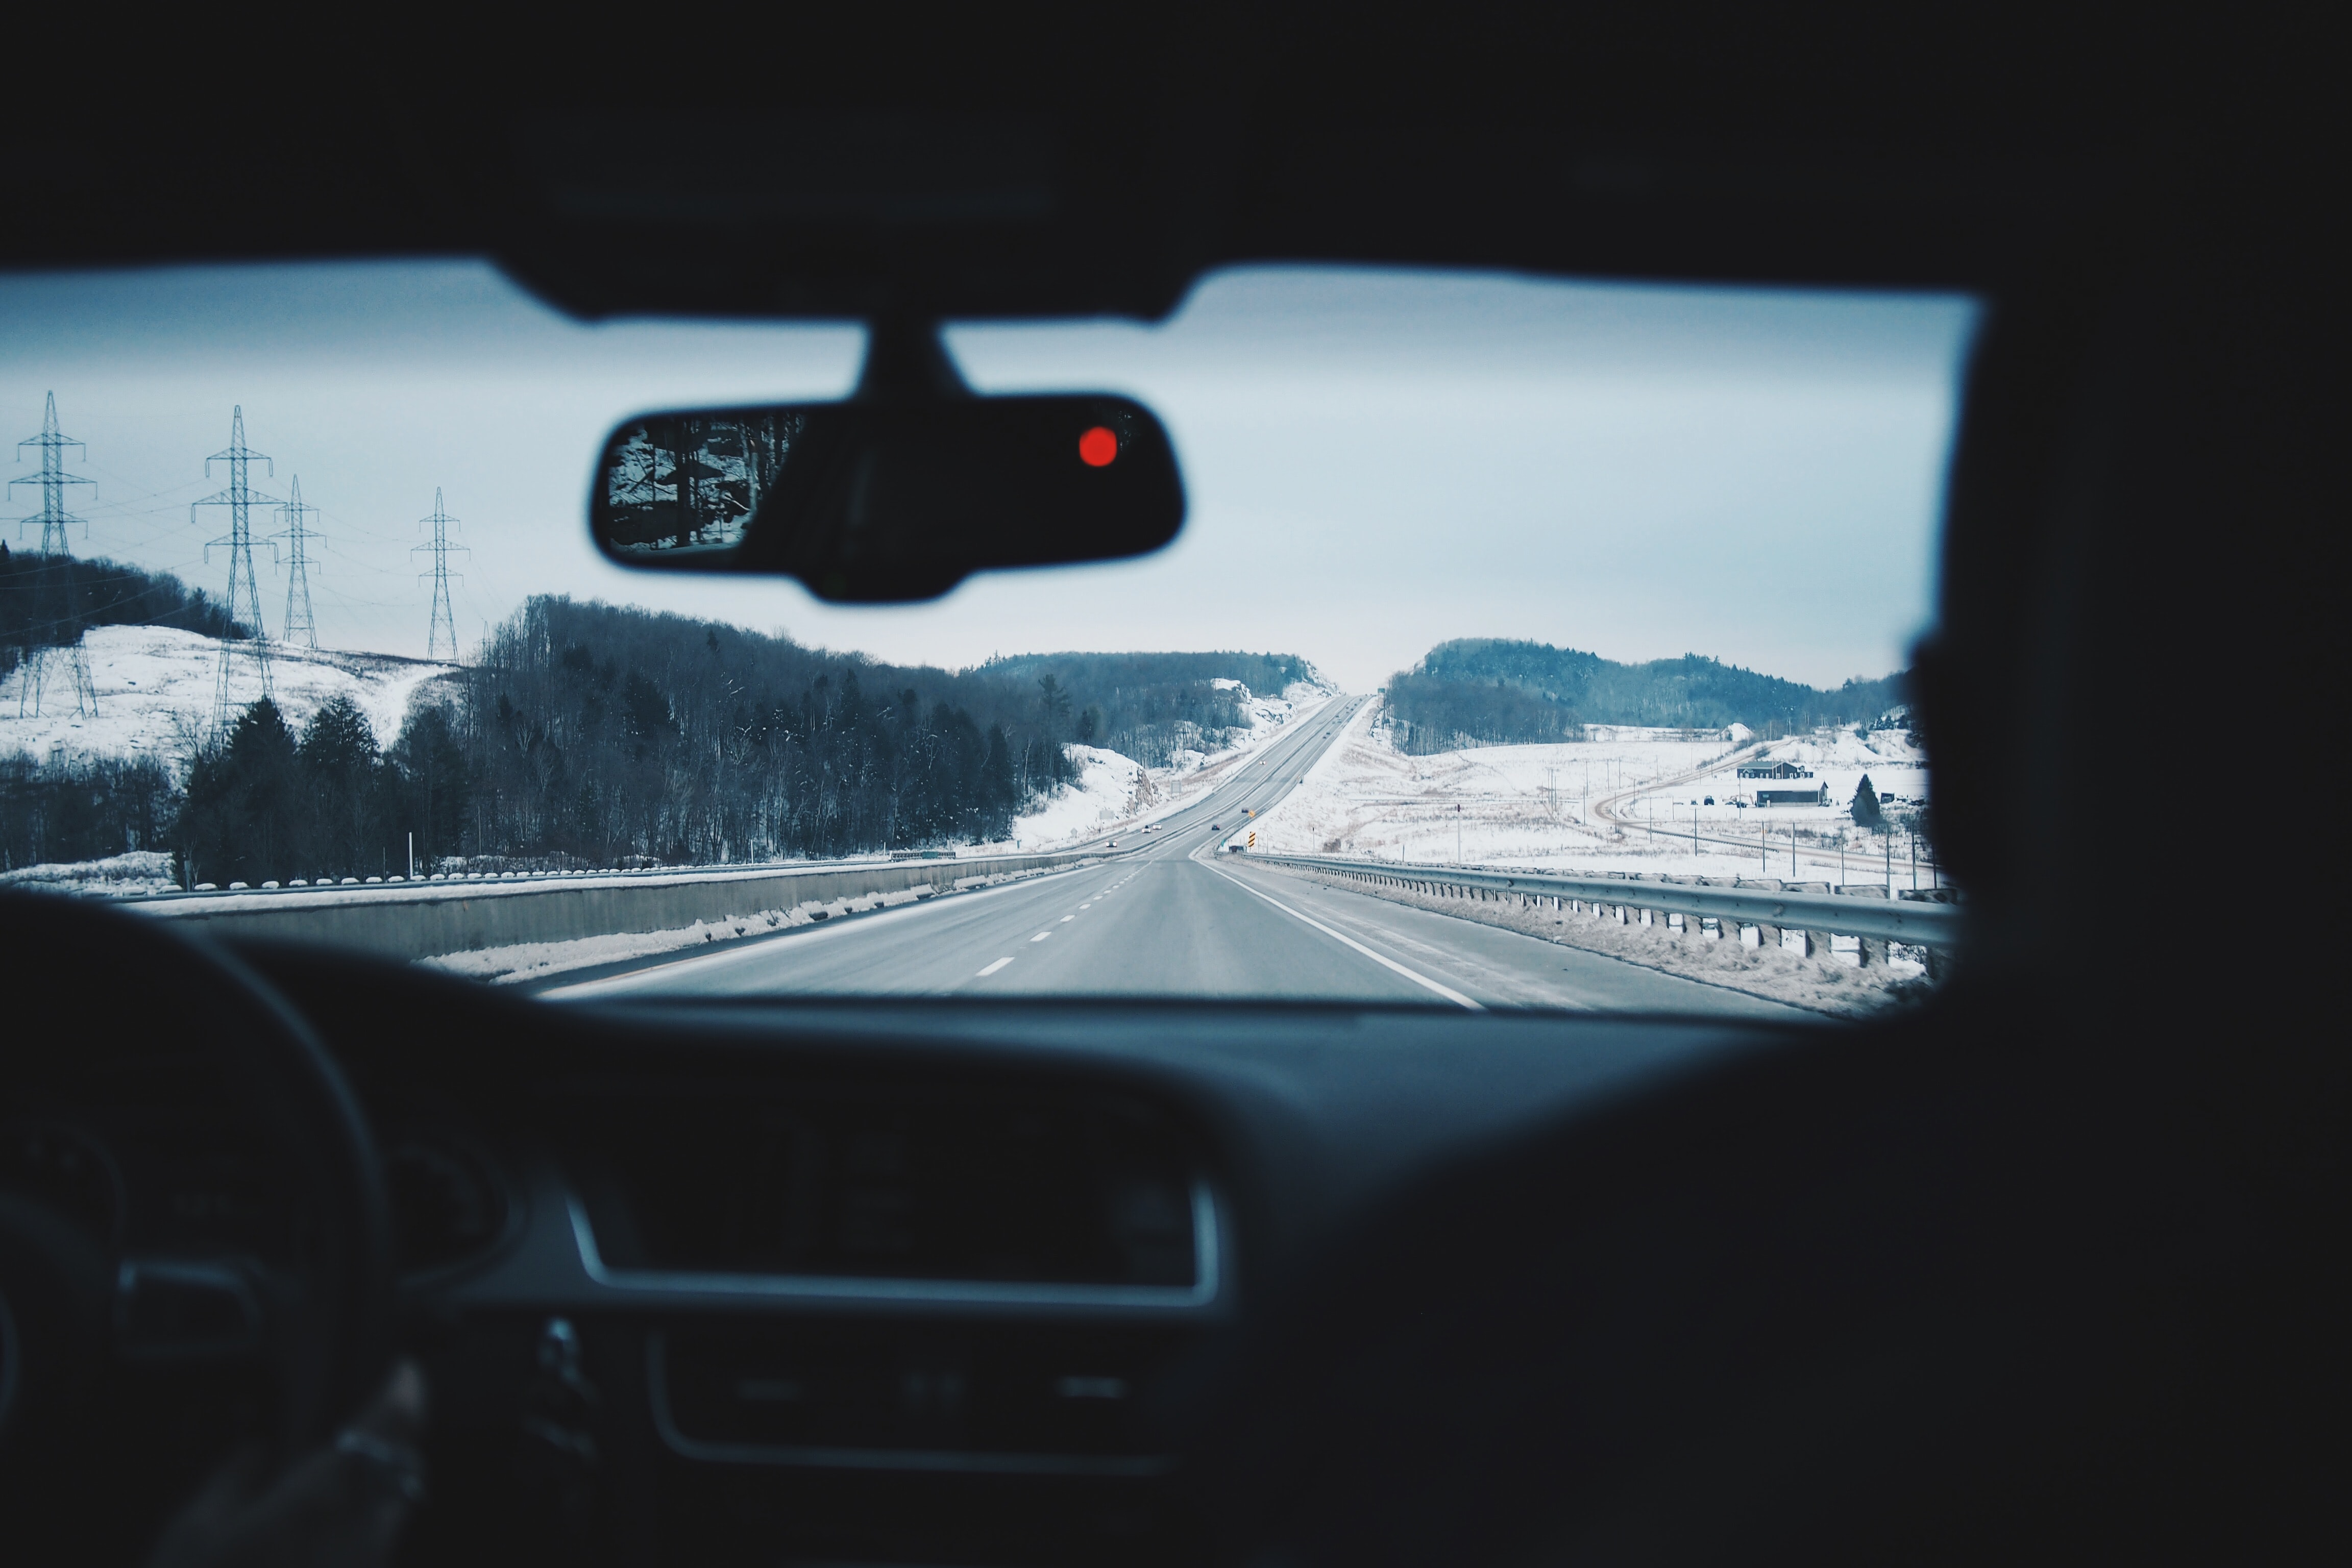 View through the windscreen from the Audi interior on the two-lane highway during Winter.